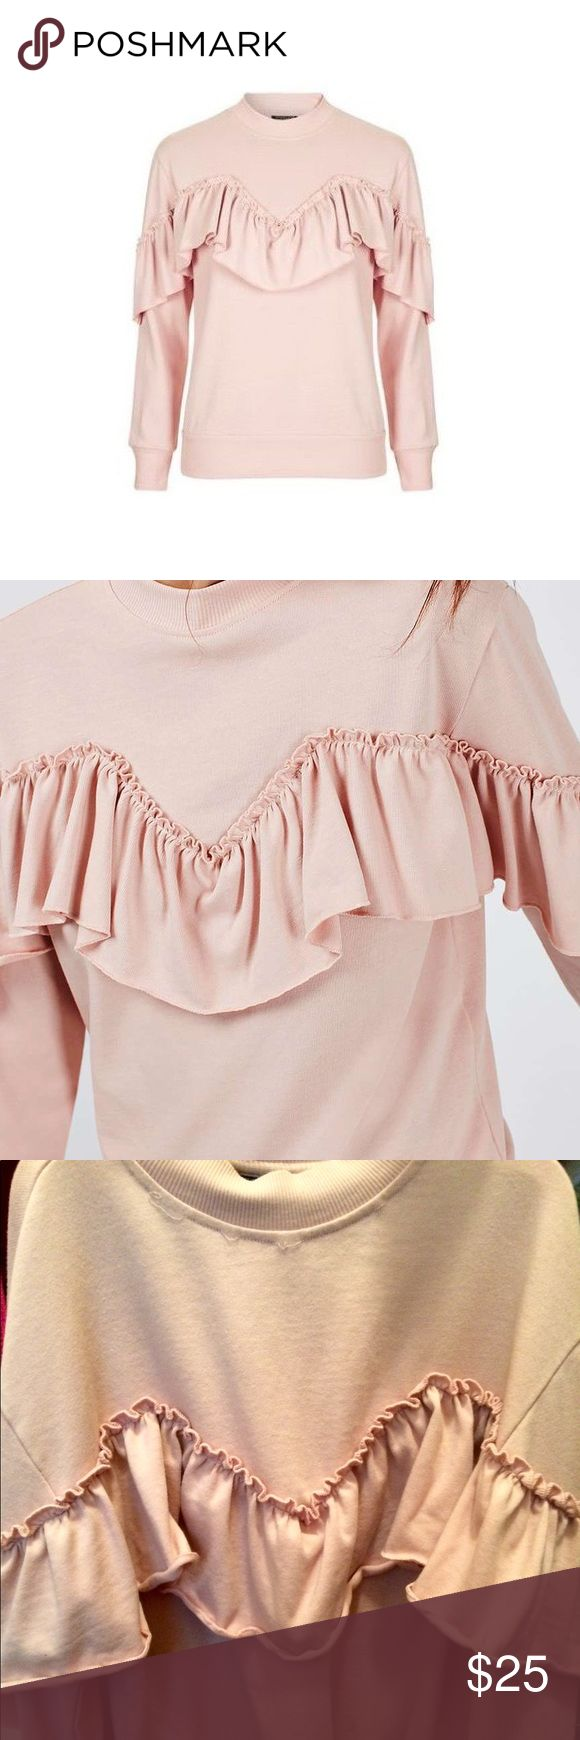 never worn ruffle topshop sweater bought with a bit of unthreading at the collar.  super adorable in a light dusty pink.  never worn out and only tried on. Topshop PETITE Sweaters